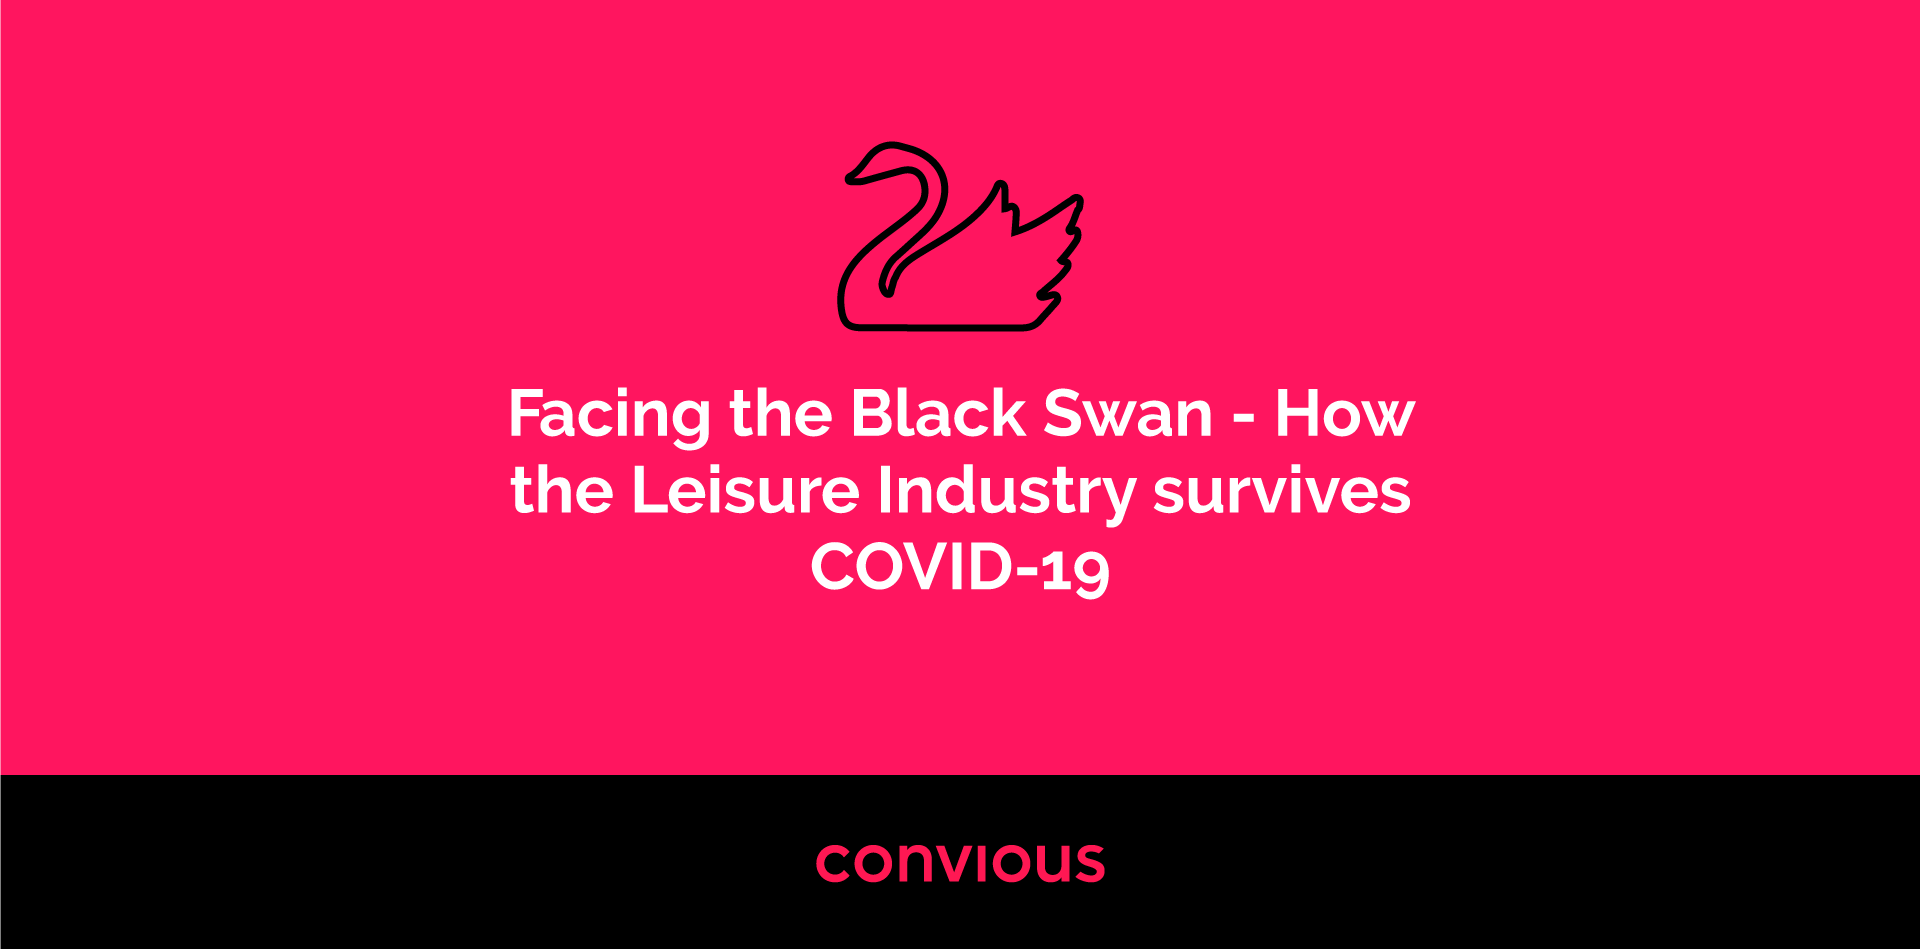 Facing the Black Swan - How the Leisure Industry survives COVID-19